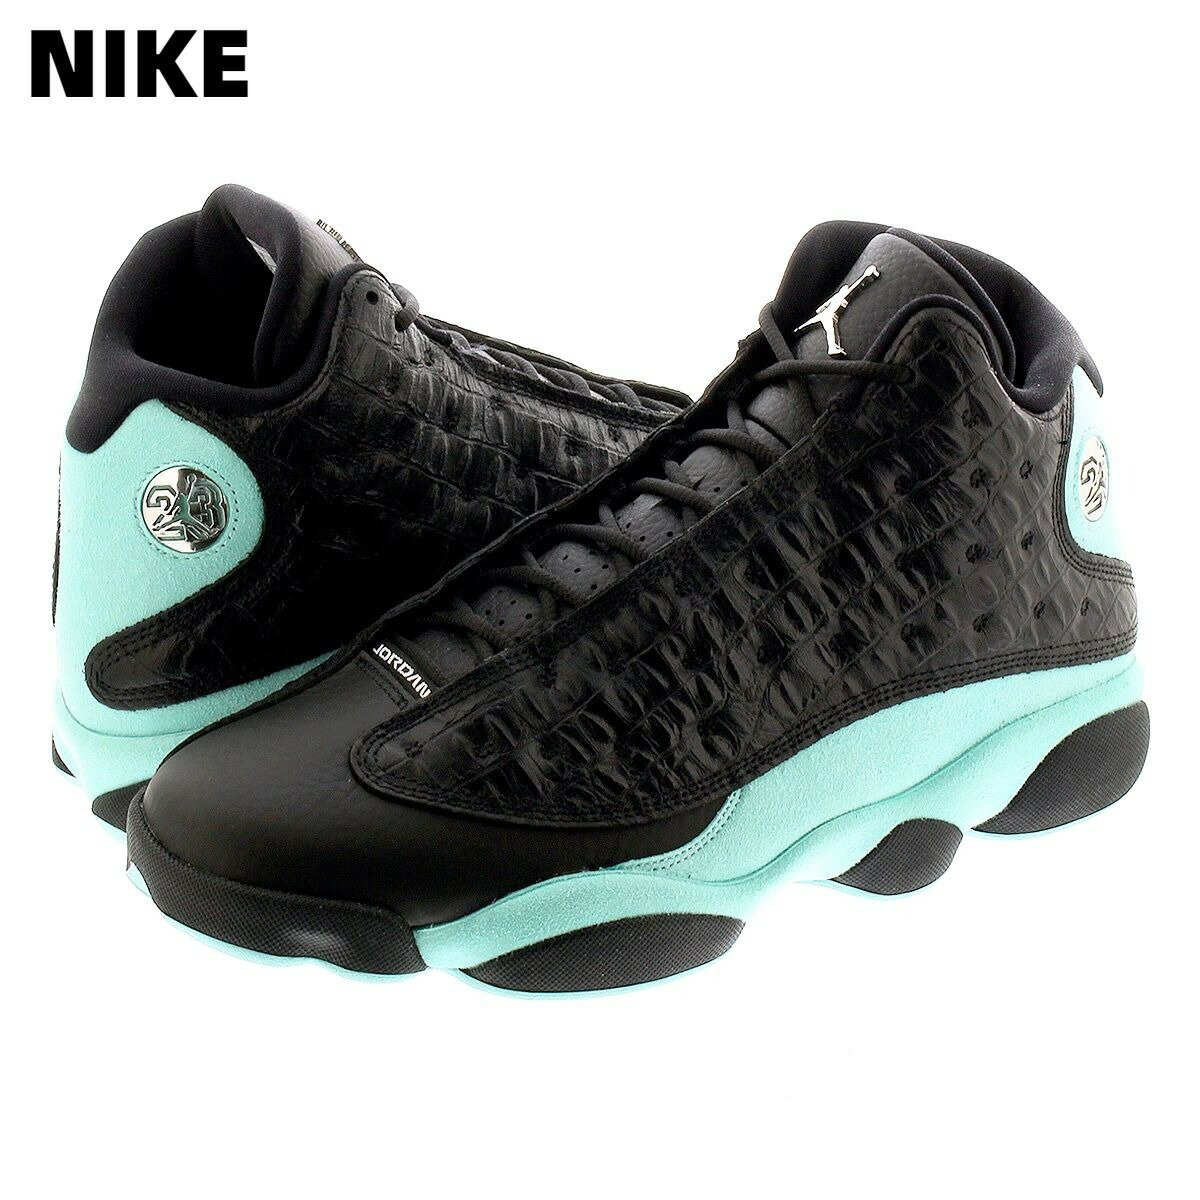 メンズ靴, スニーカー 9.5(27.5cm) NIKE AIR JORDAN 13 RETRO 414571-030 BLACKMETALLIC SILVER 13